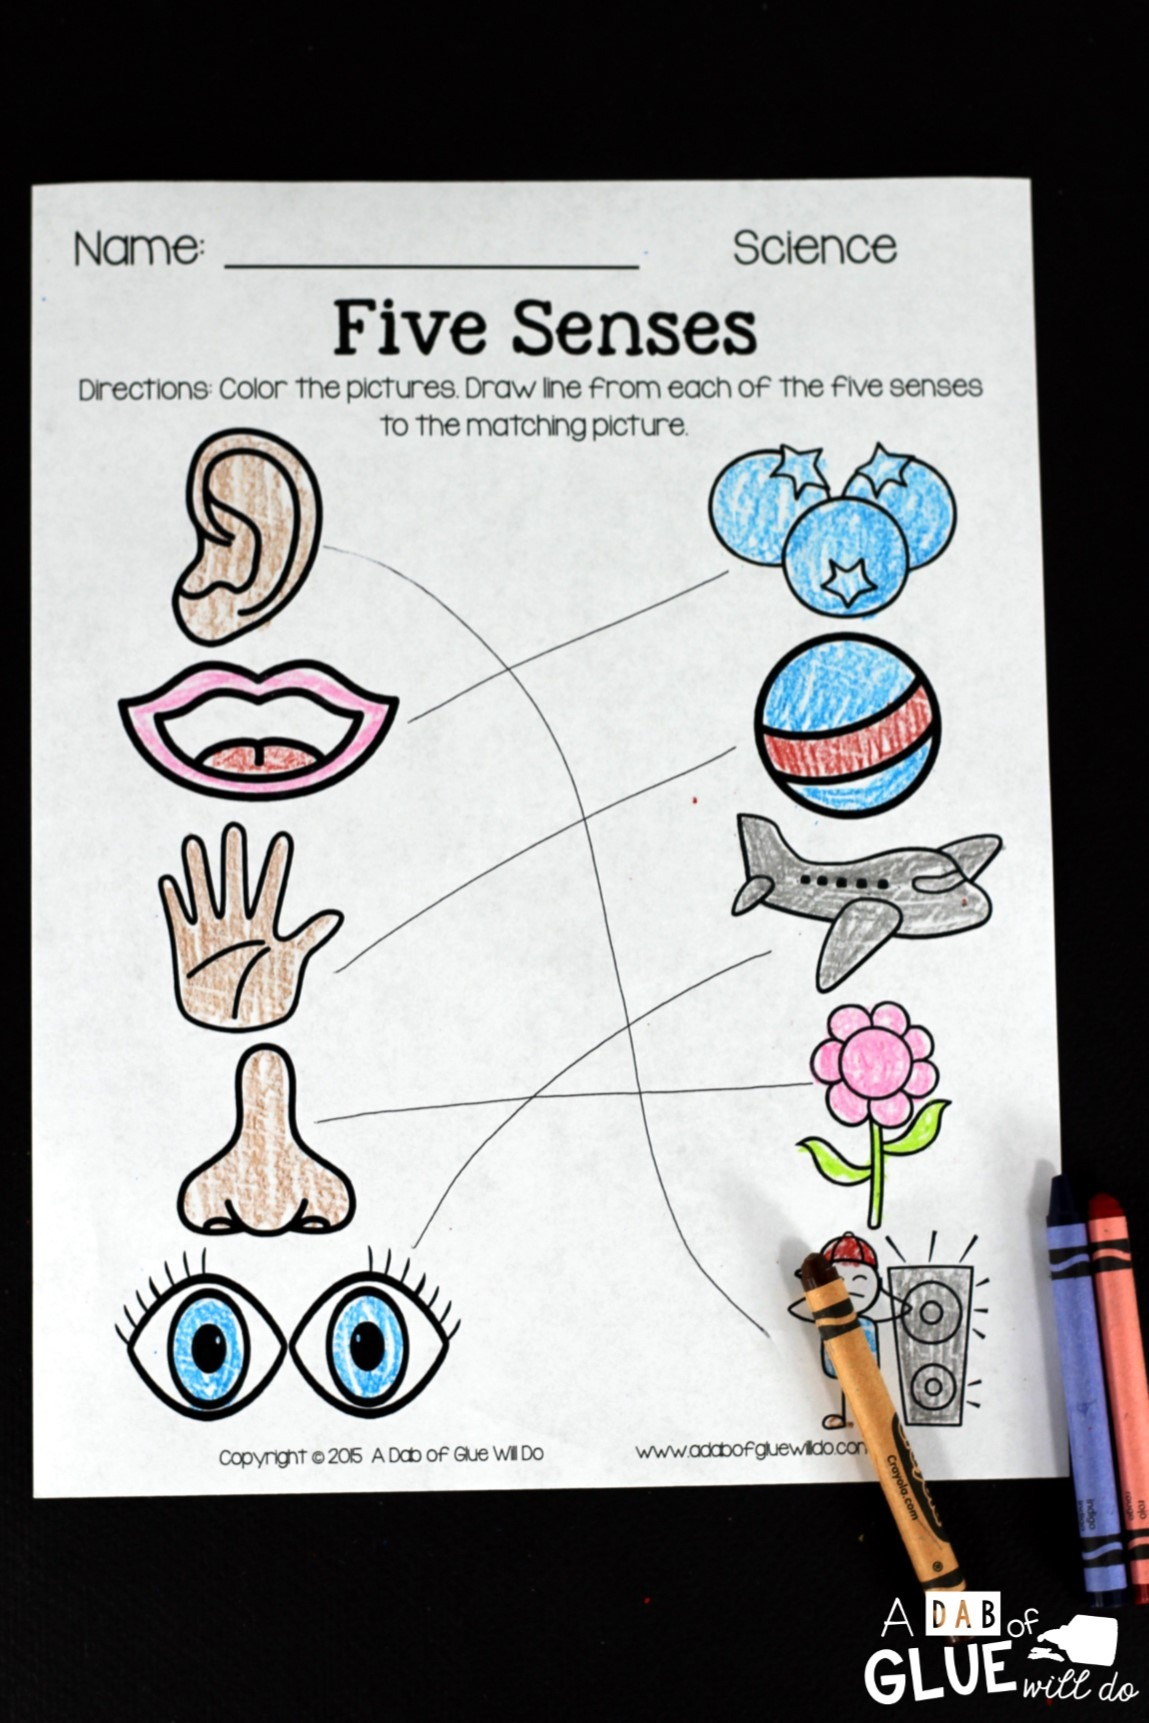 The perfect NO PREP Kindergarten Summer Review to help your kindergarten students with hands-on learning over summer break! Give your students going into First Grade fun review printables to help prevent the summer slide and set them up for First Grade success. This review is packed full of engaging homework review activities that will bring a smile to their sweet faces as they work on math, language arts, social studies, and science! Parents will enjoy the student's focus on summer homework and First Grade teachers will LOVE their new students ready for First Grade work.